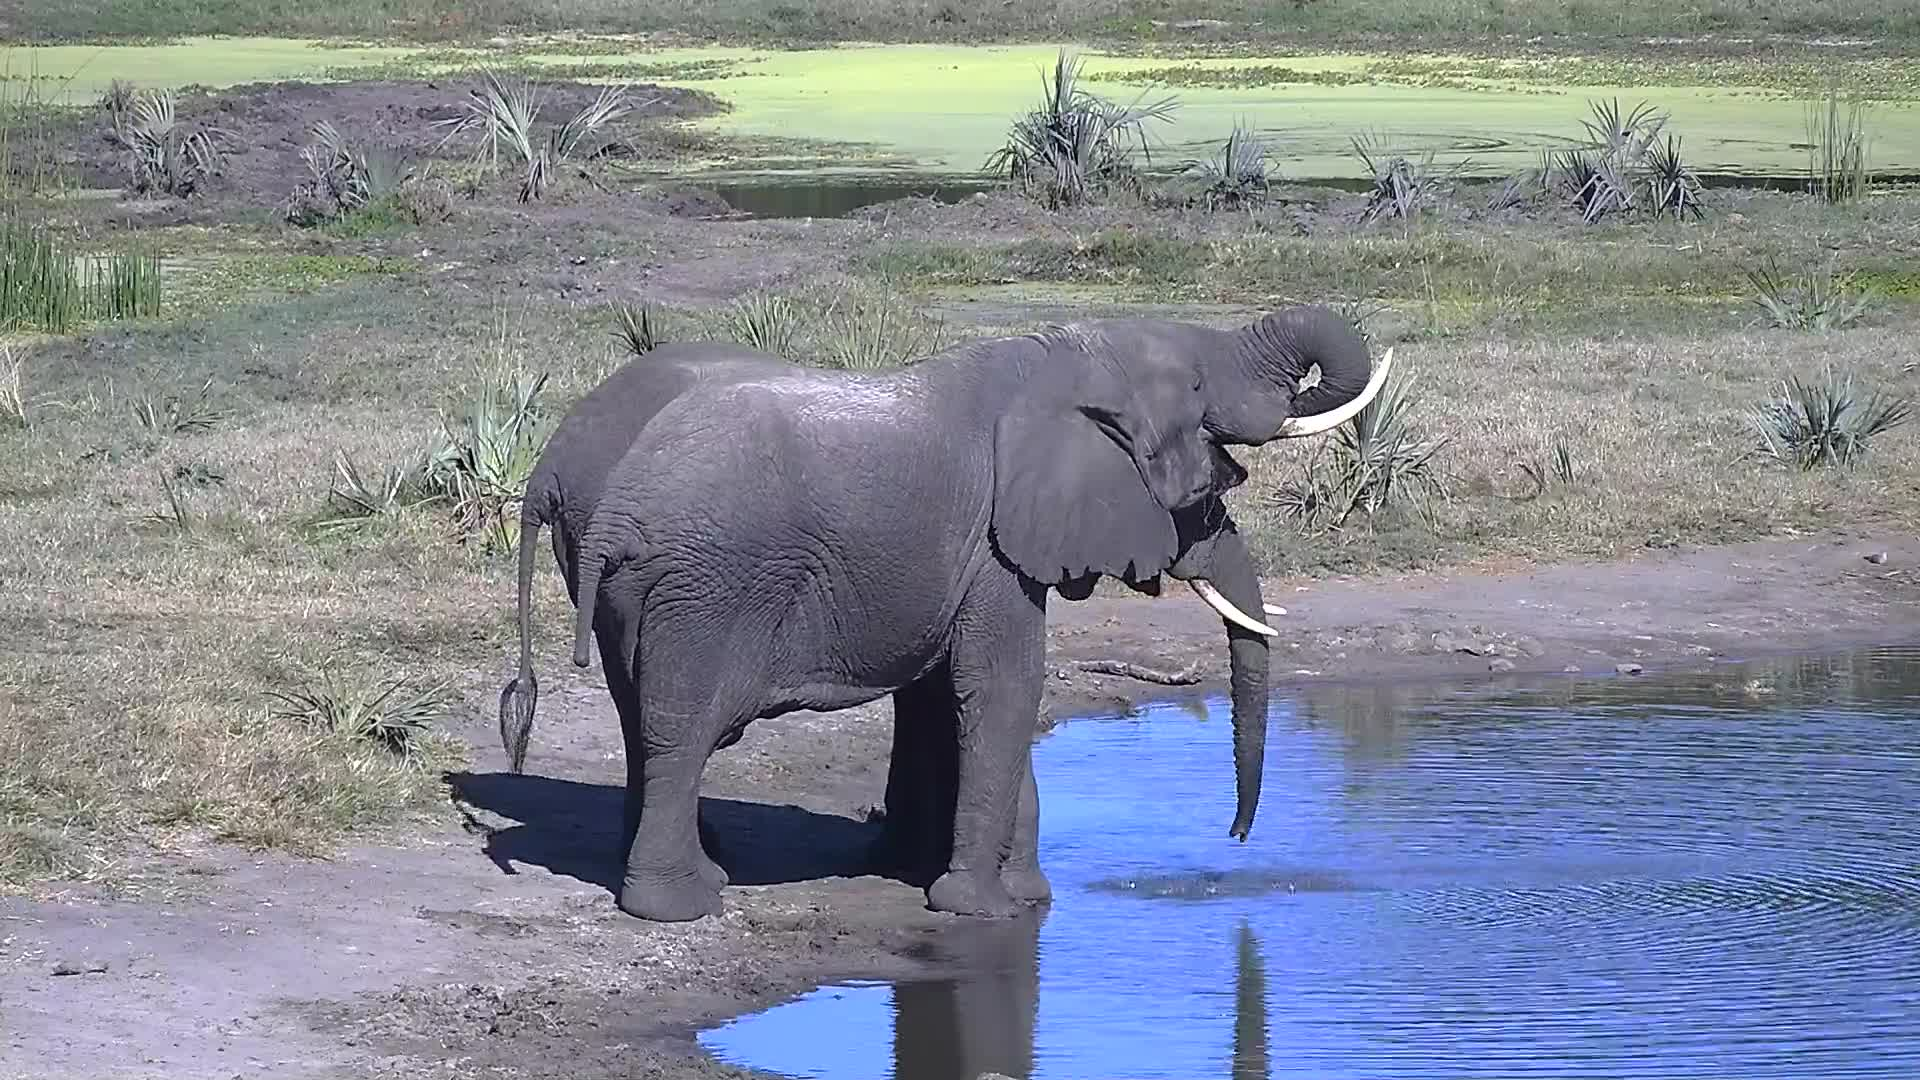 VIDEO: Two Elephant having a drink